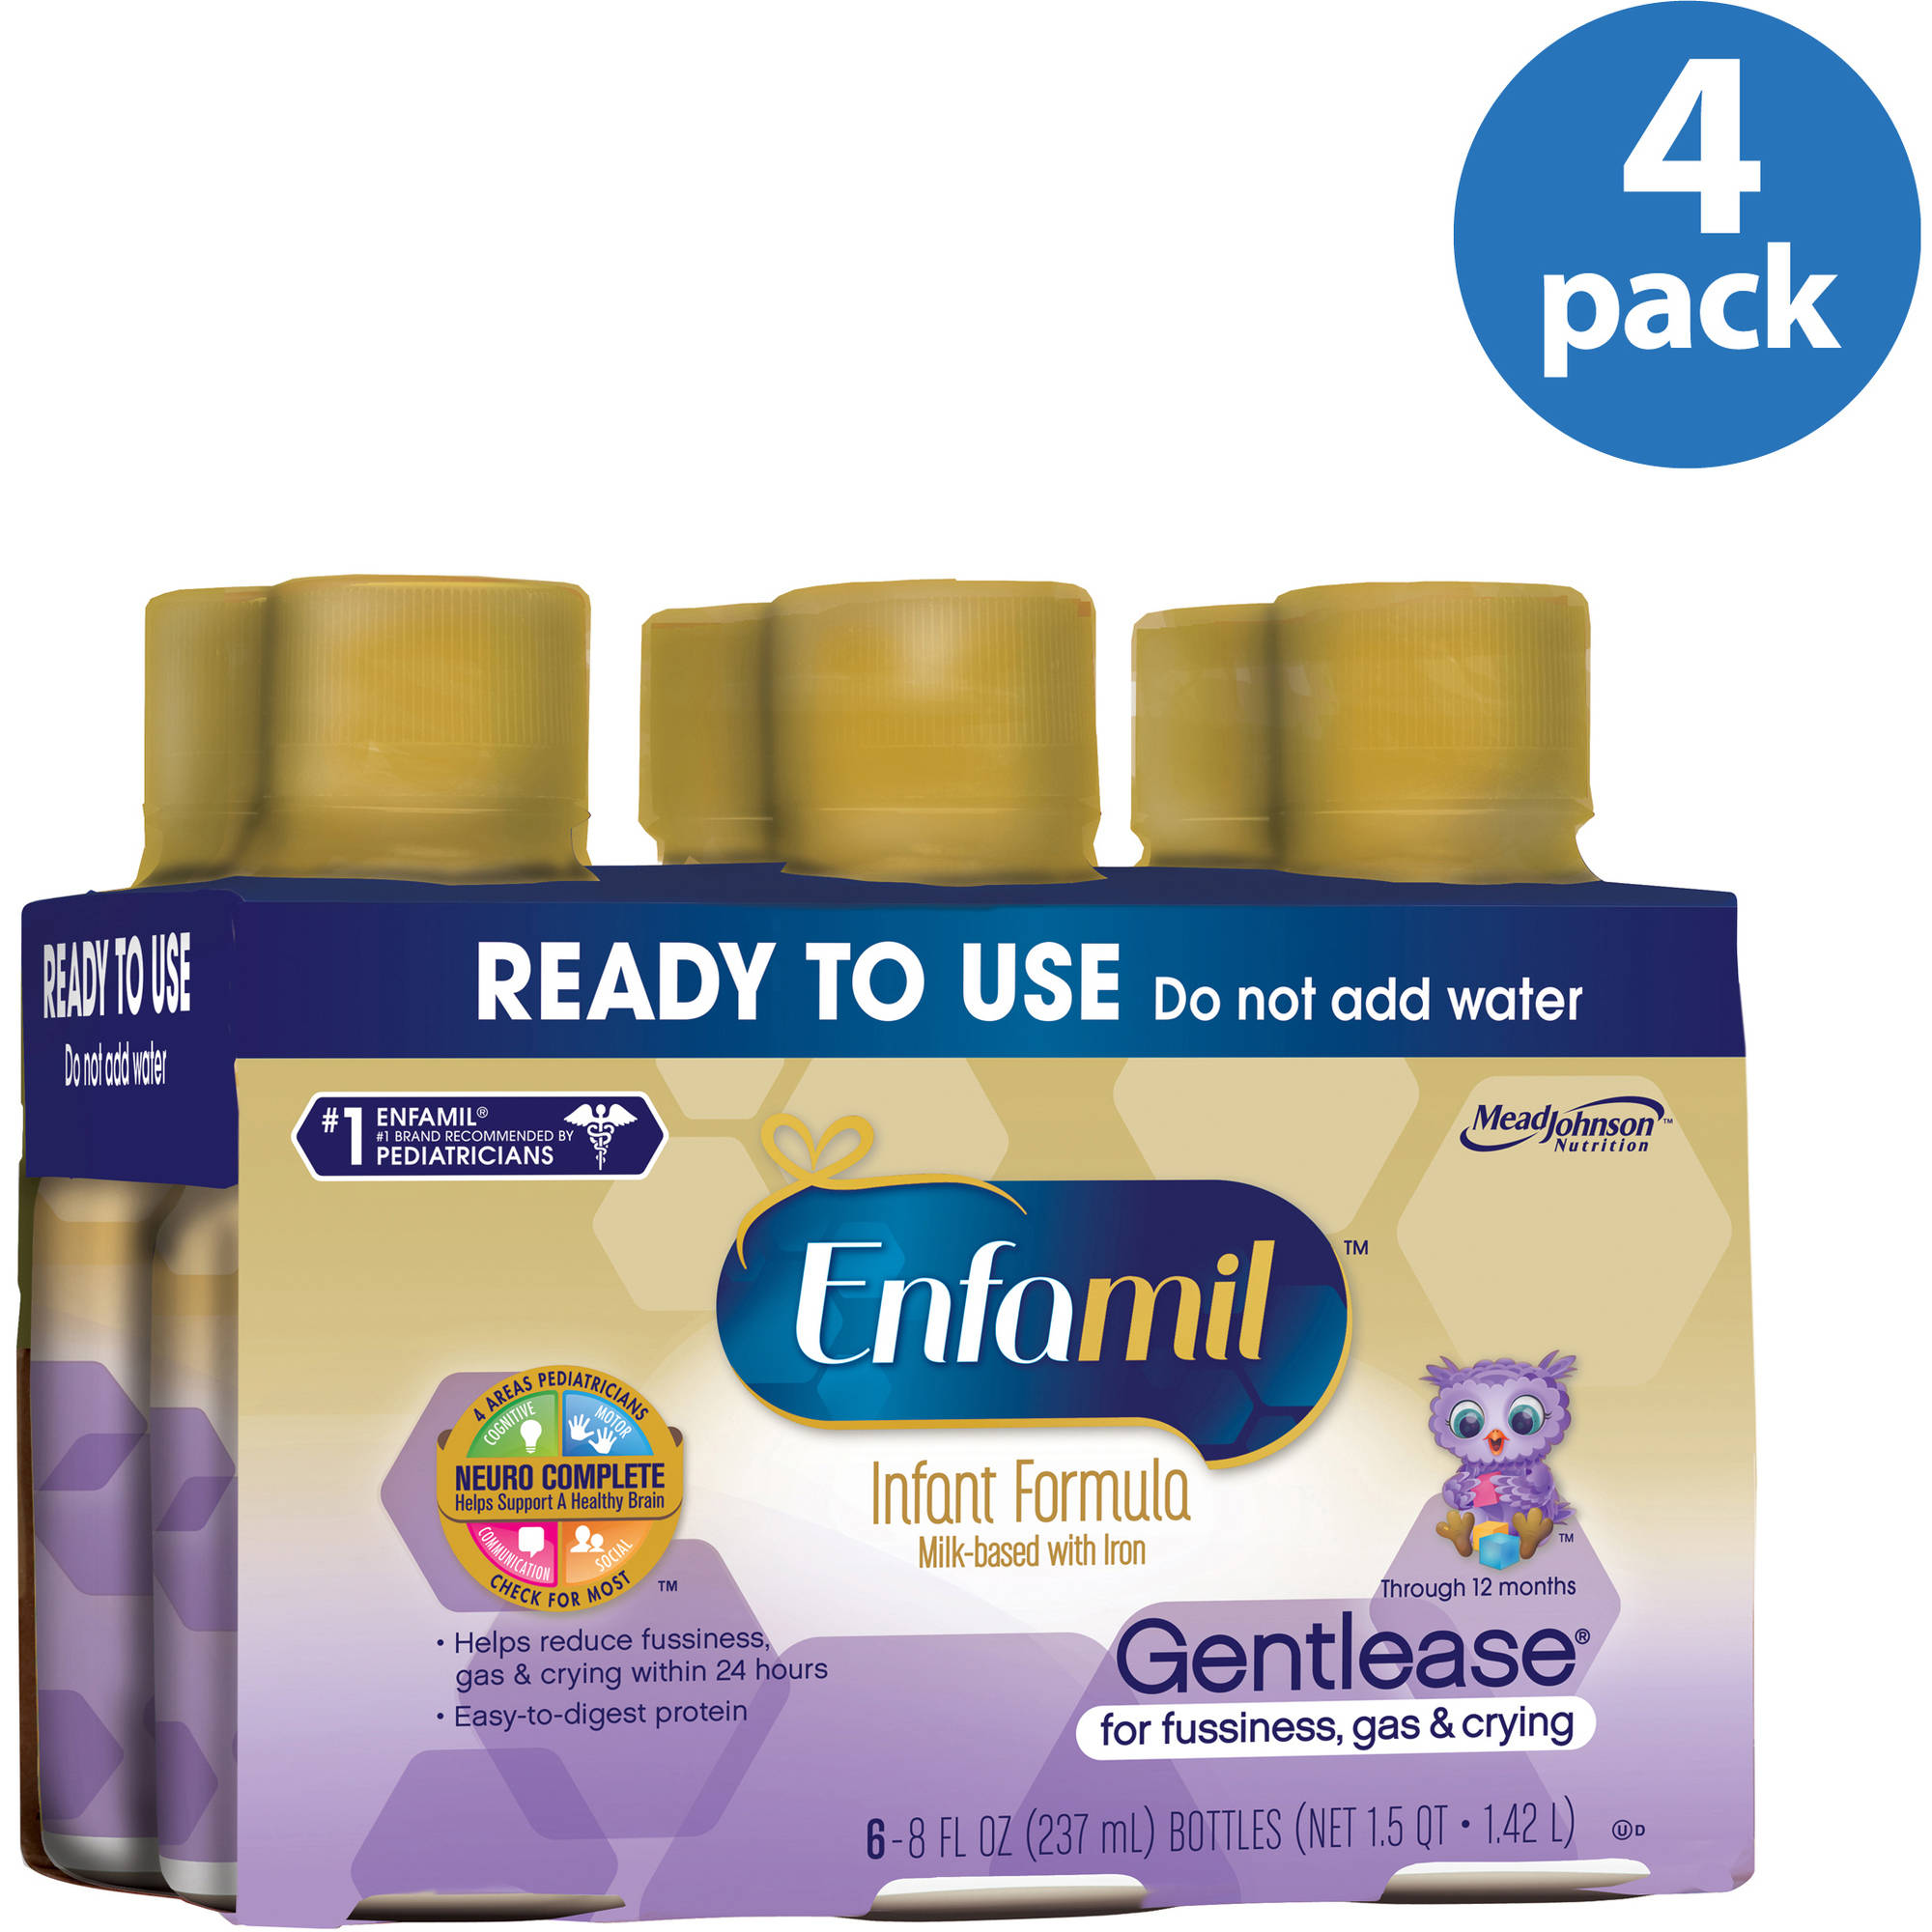 Enfamil Gentlease baby formula - Ready-to-Use 8 fl oz Plastic Bottles - 6ct, Pack of 4